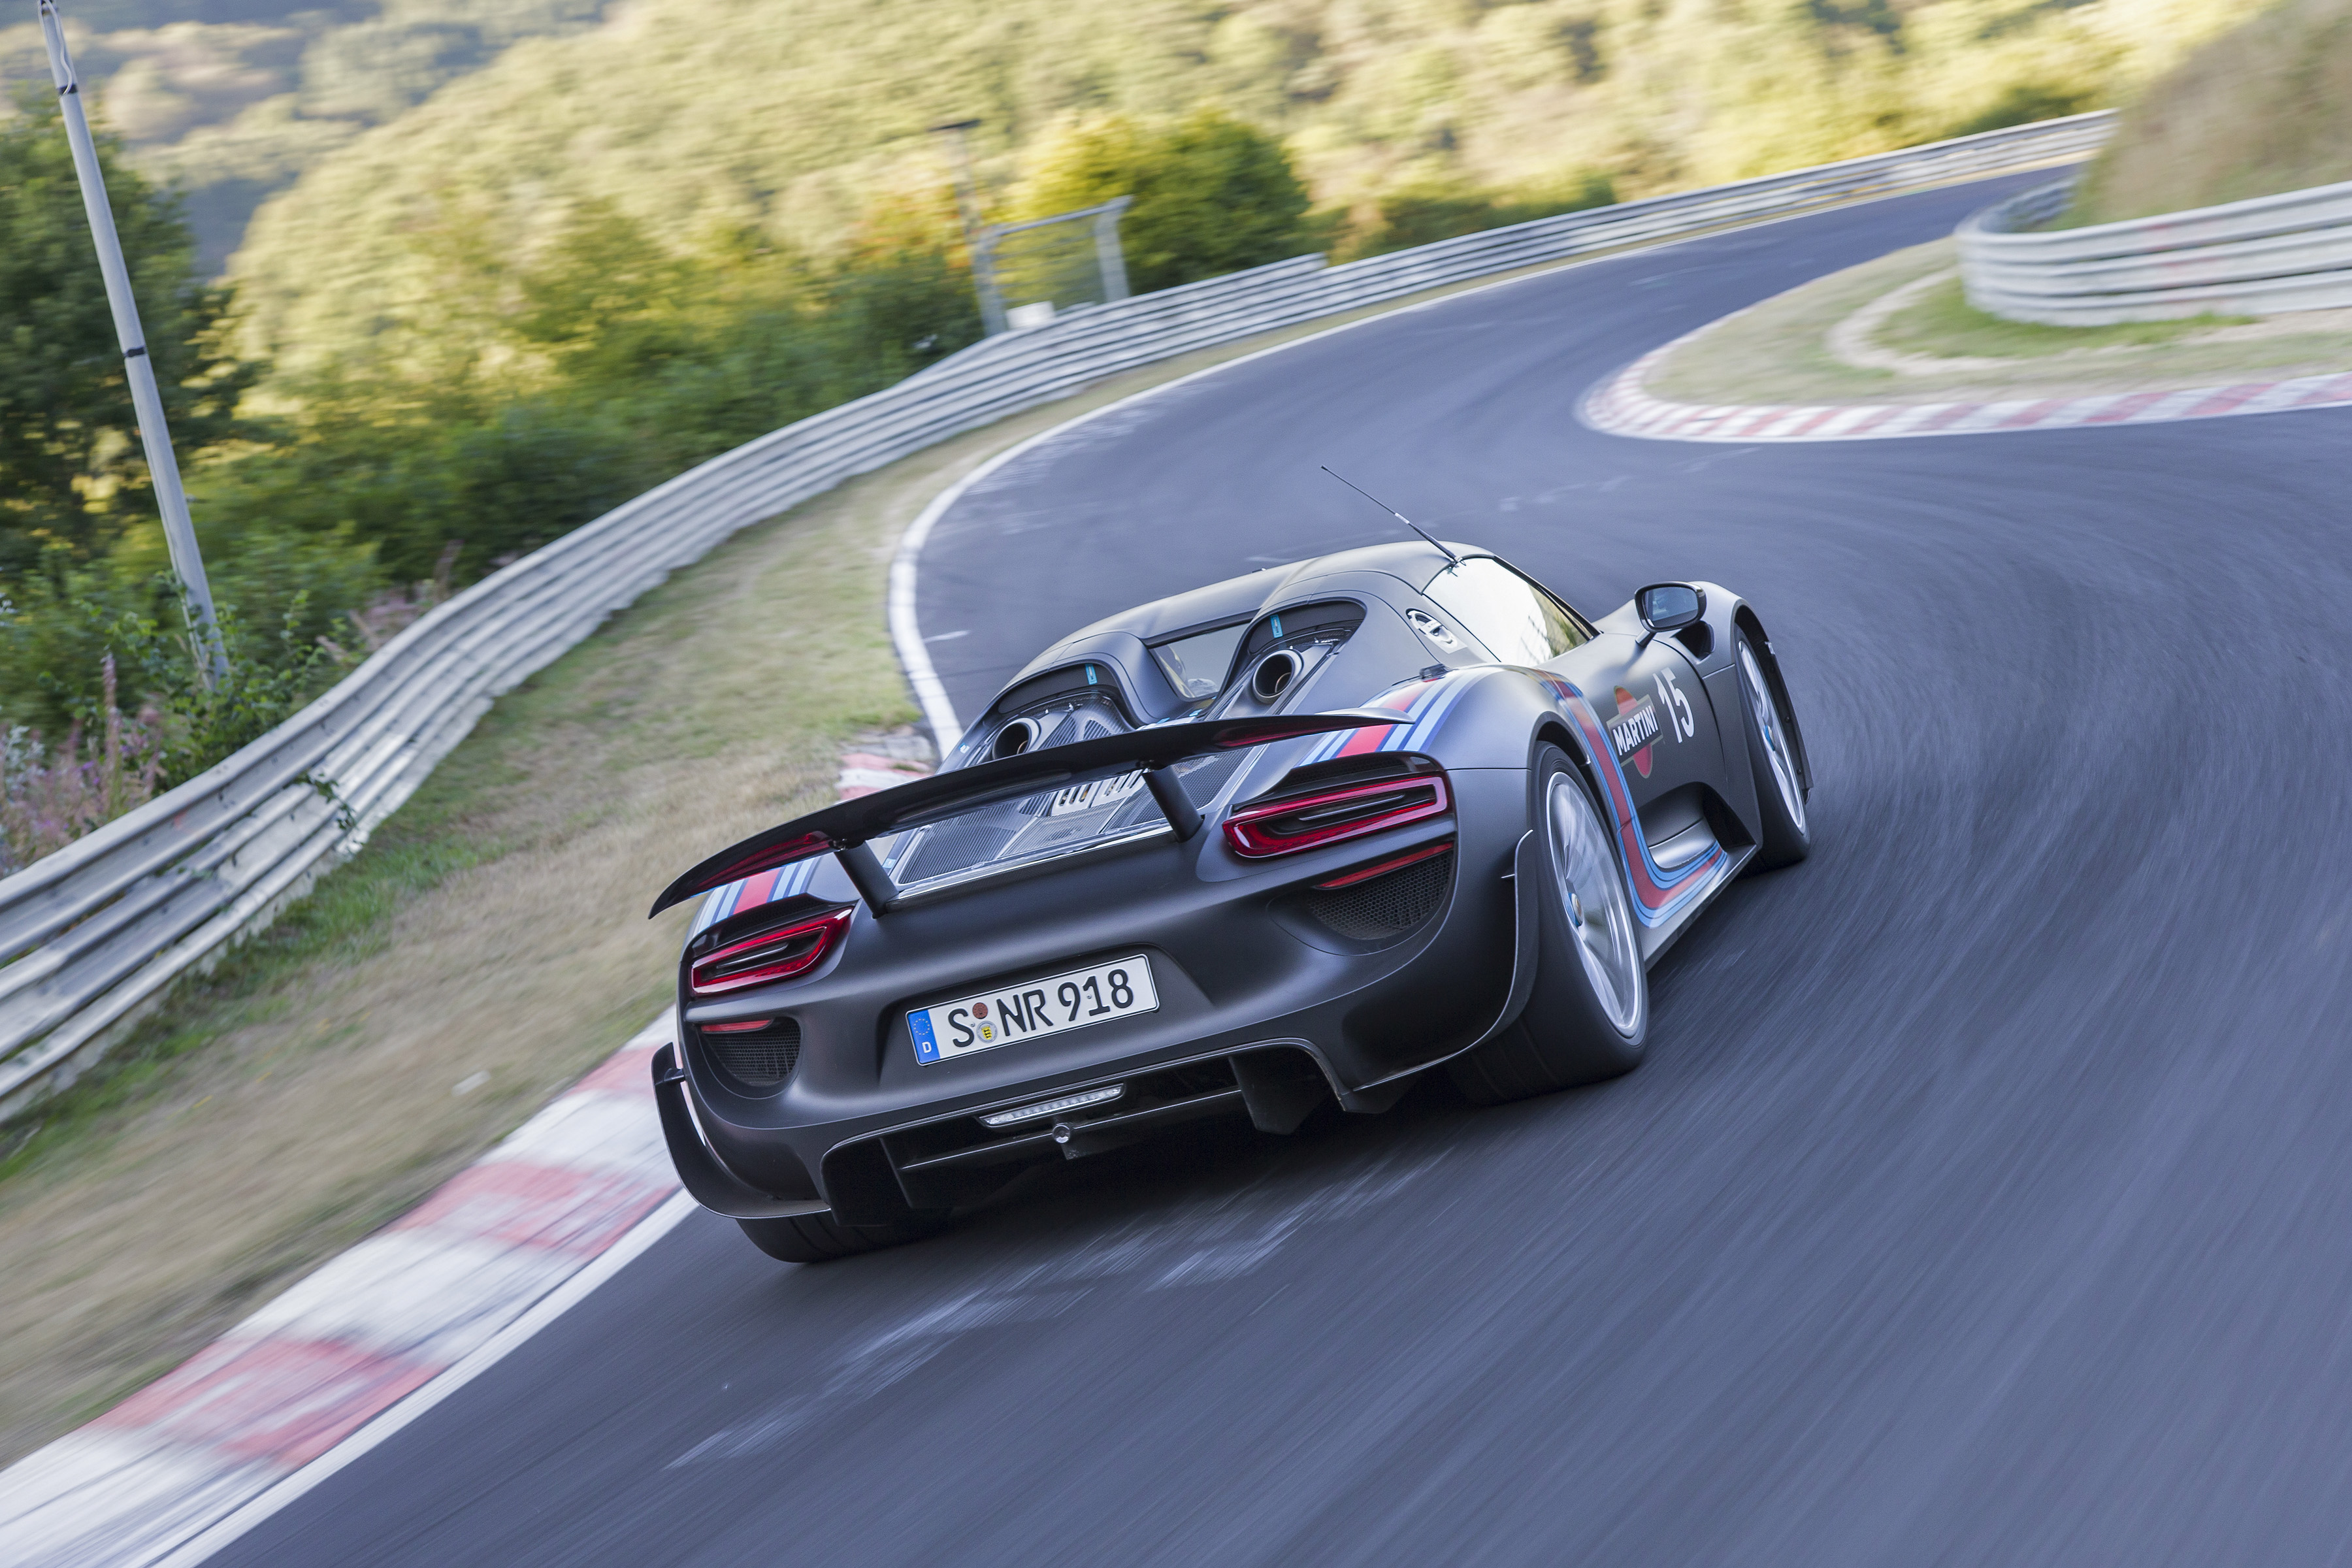 Video: Porsche 918 Sets Nürburgring Record - Winding Road